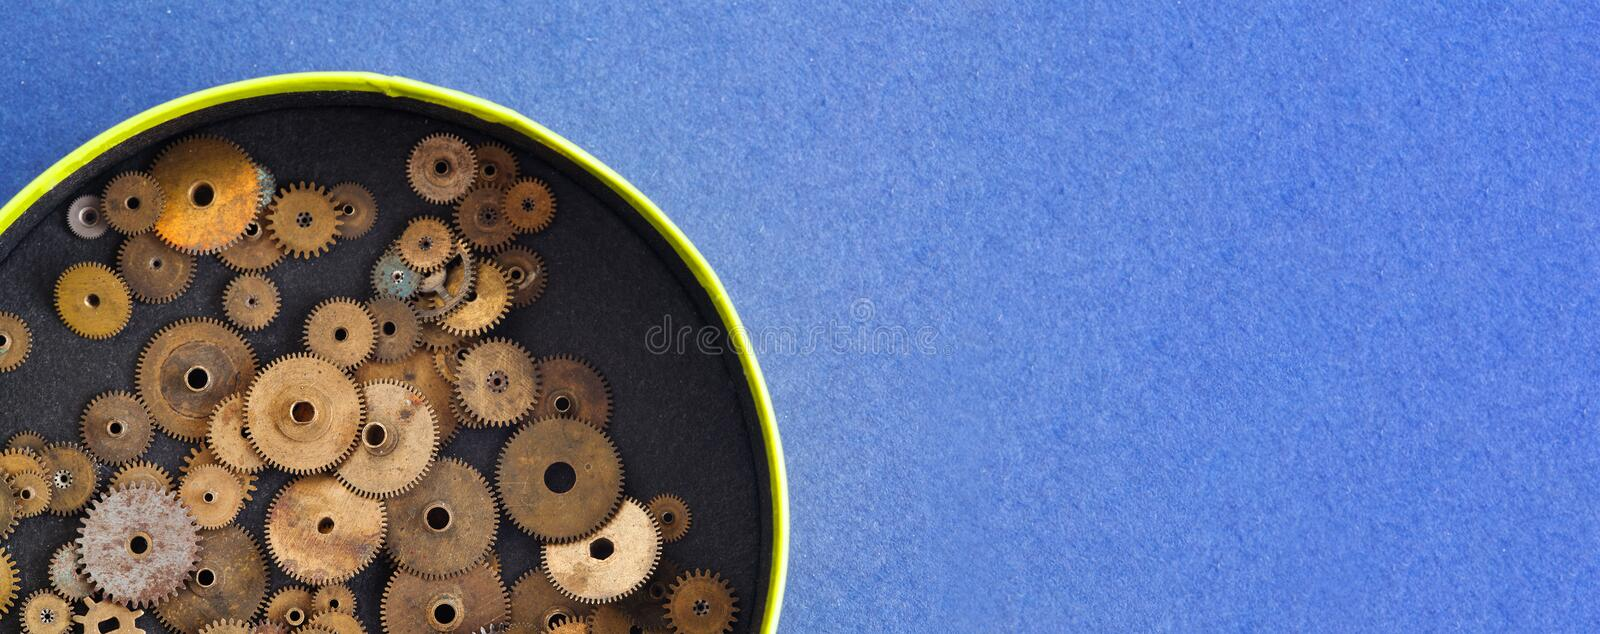 Cogs wheels gears collection in opened vintage box. macro view, blue paper background. copy space.  royalty free stock photography